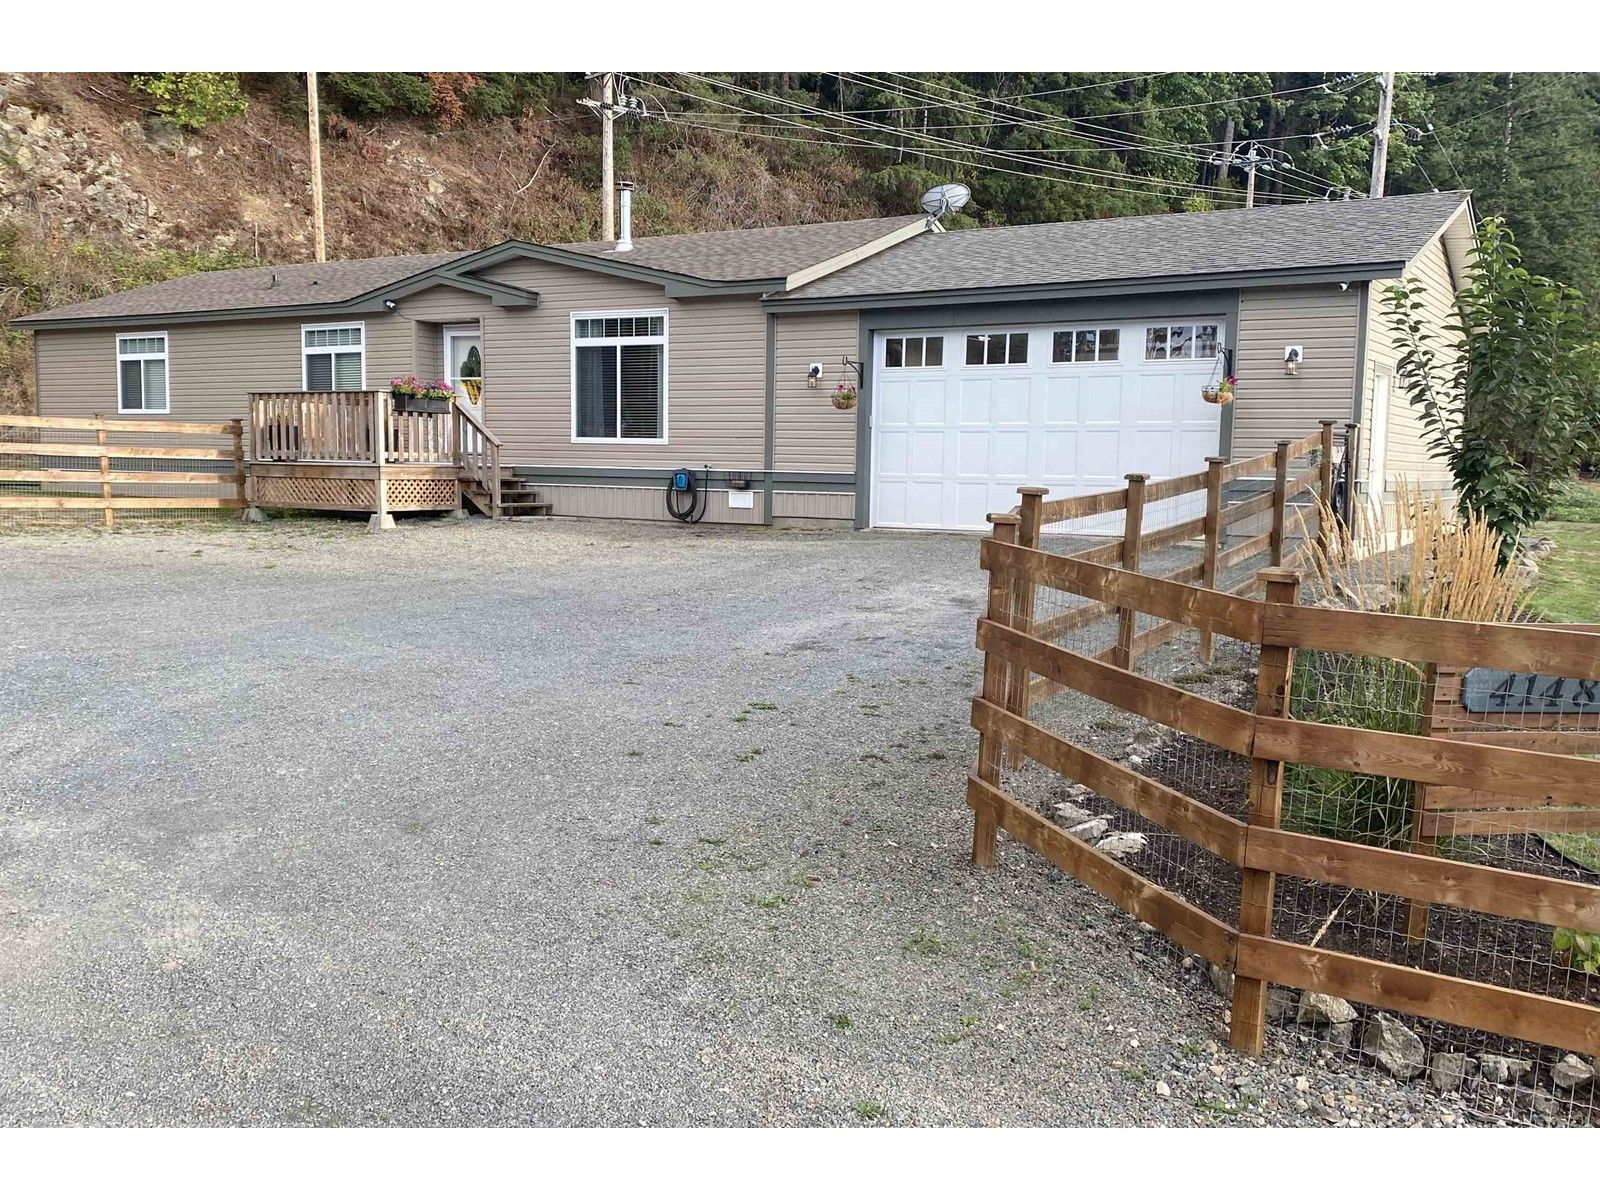 Main Photo: 41480 NO. 5 ROAD in ABBOTSFORD: House for sale : MLS®# R2616648